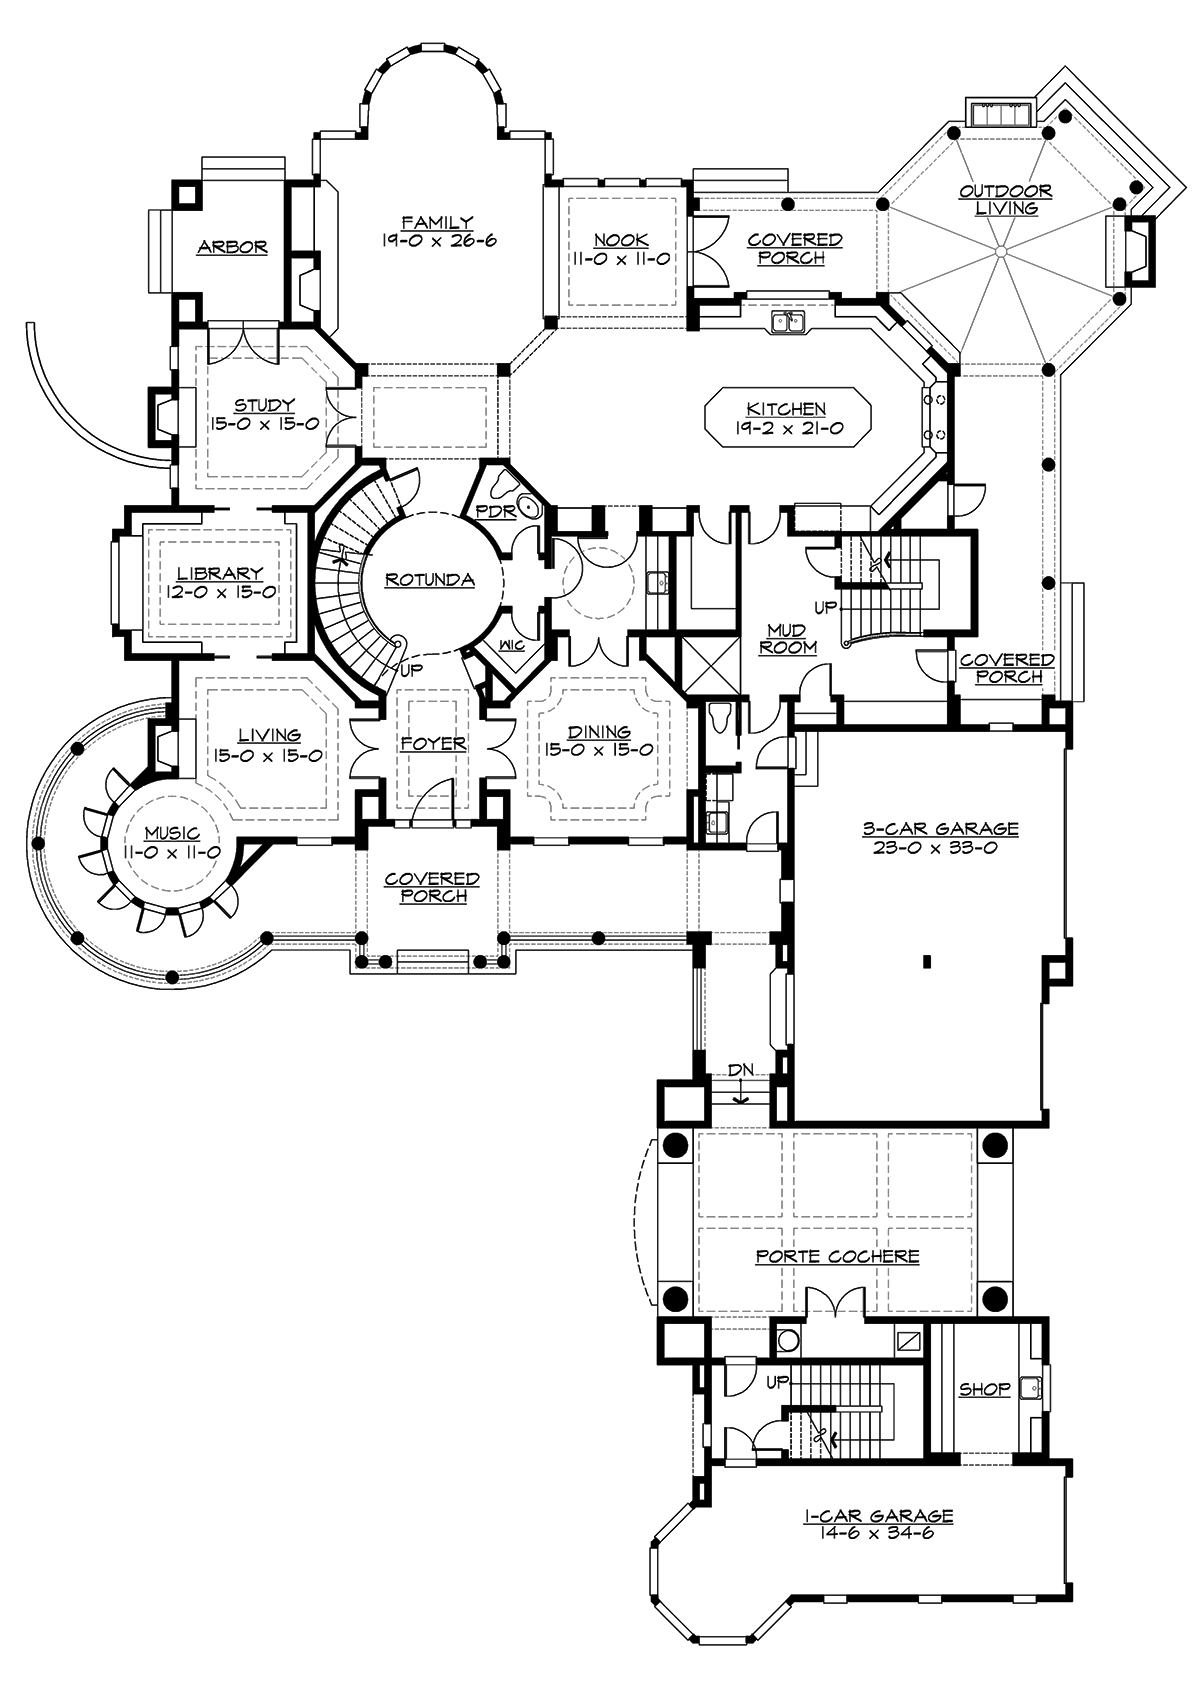 Choice homes floor plans 2005 for Copying house plans